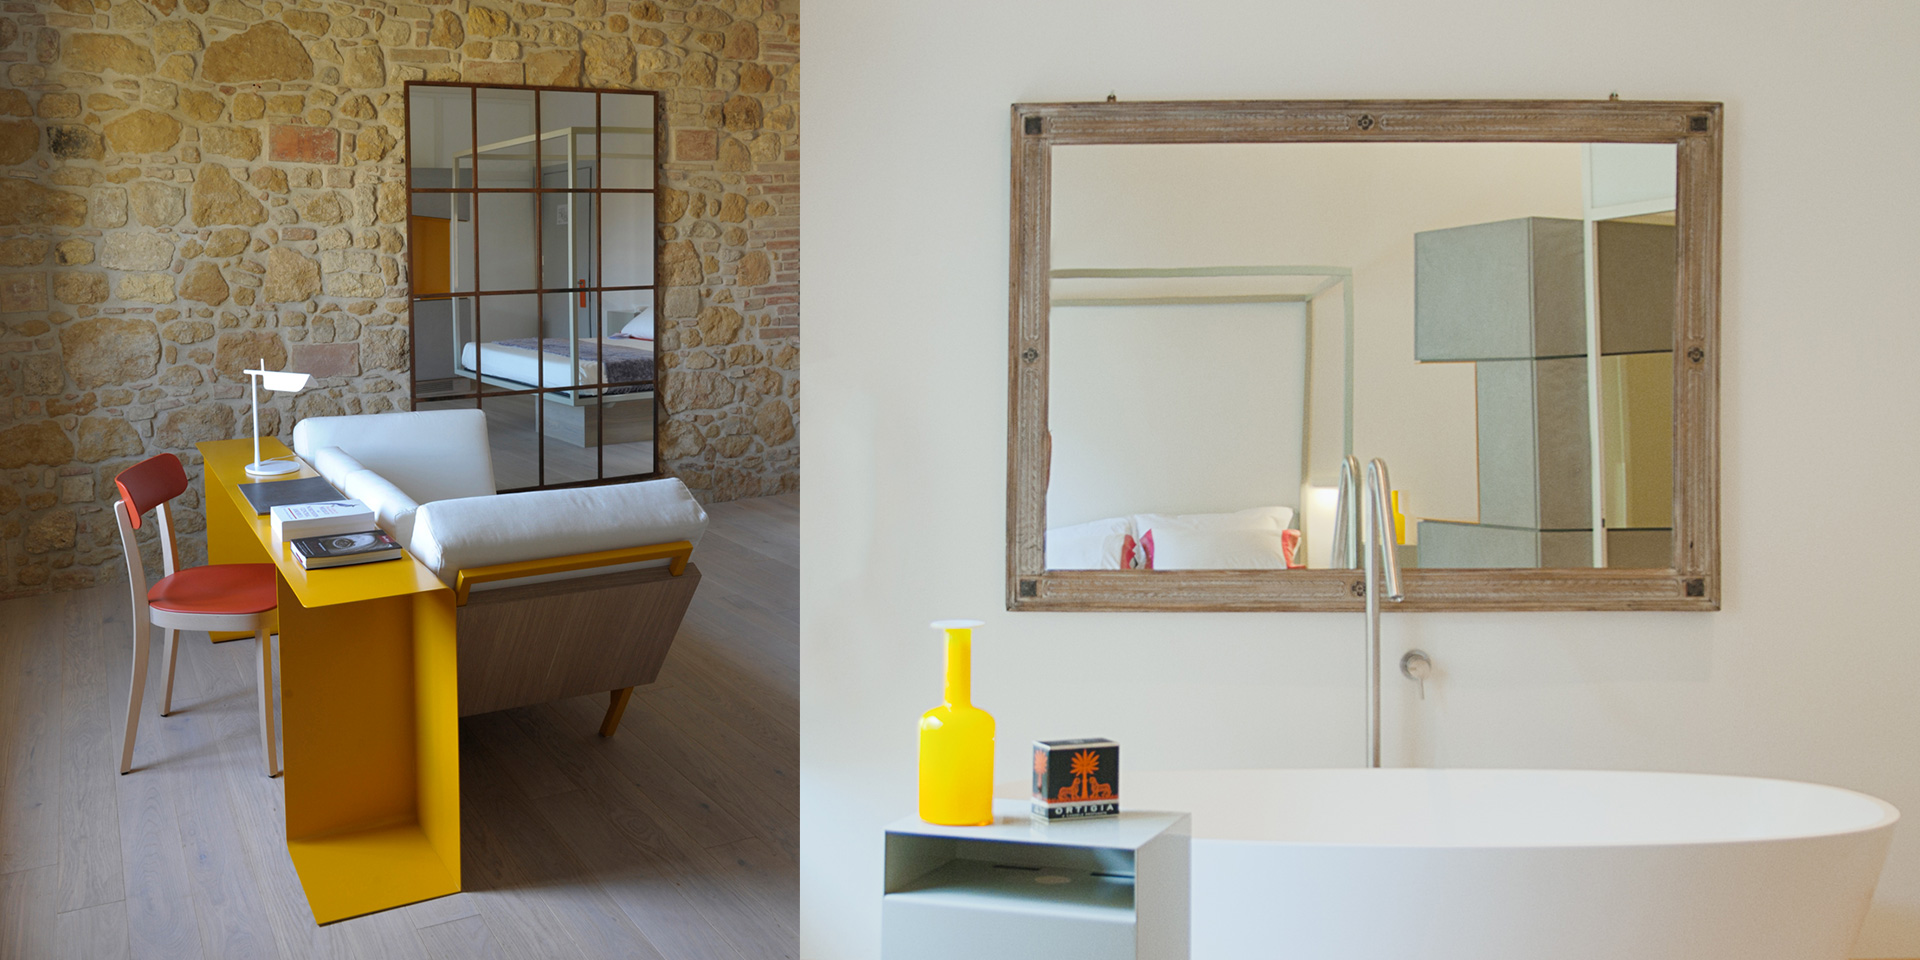 LaBanditaTownhouse-Pienza-Italy-Europe-rooms.jpg